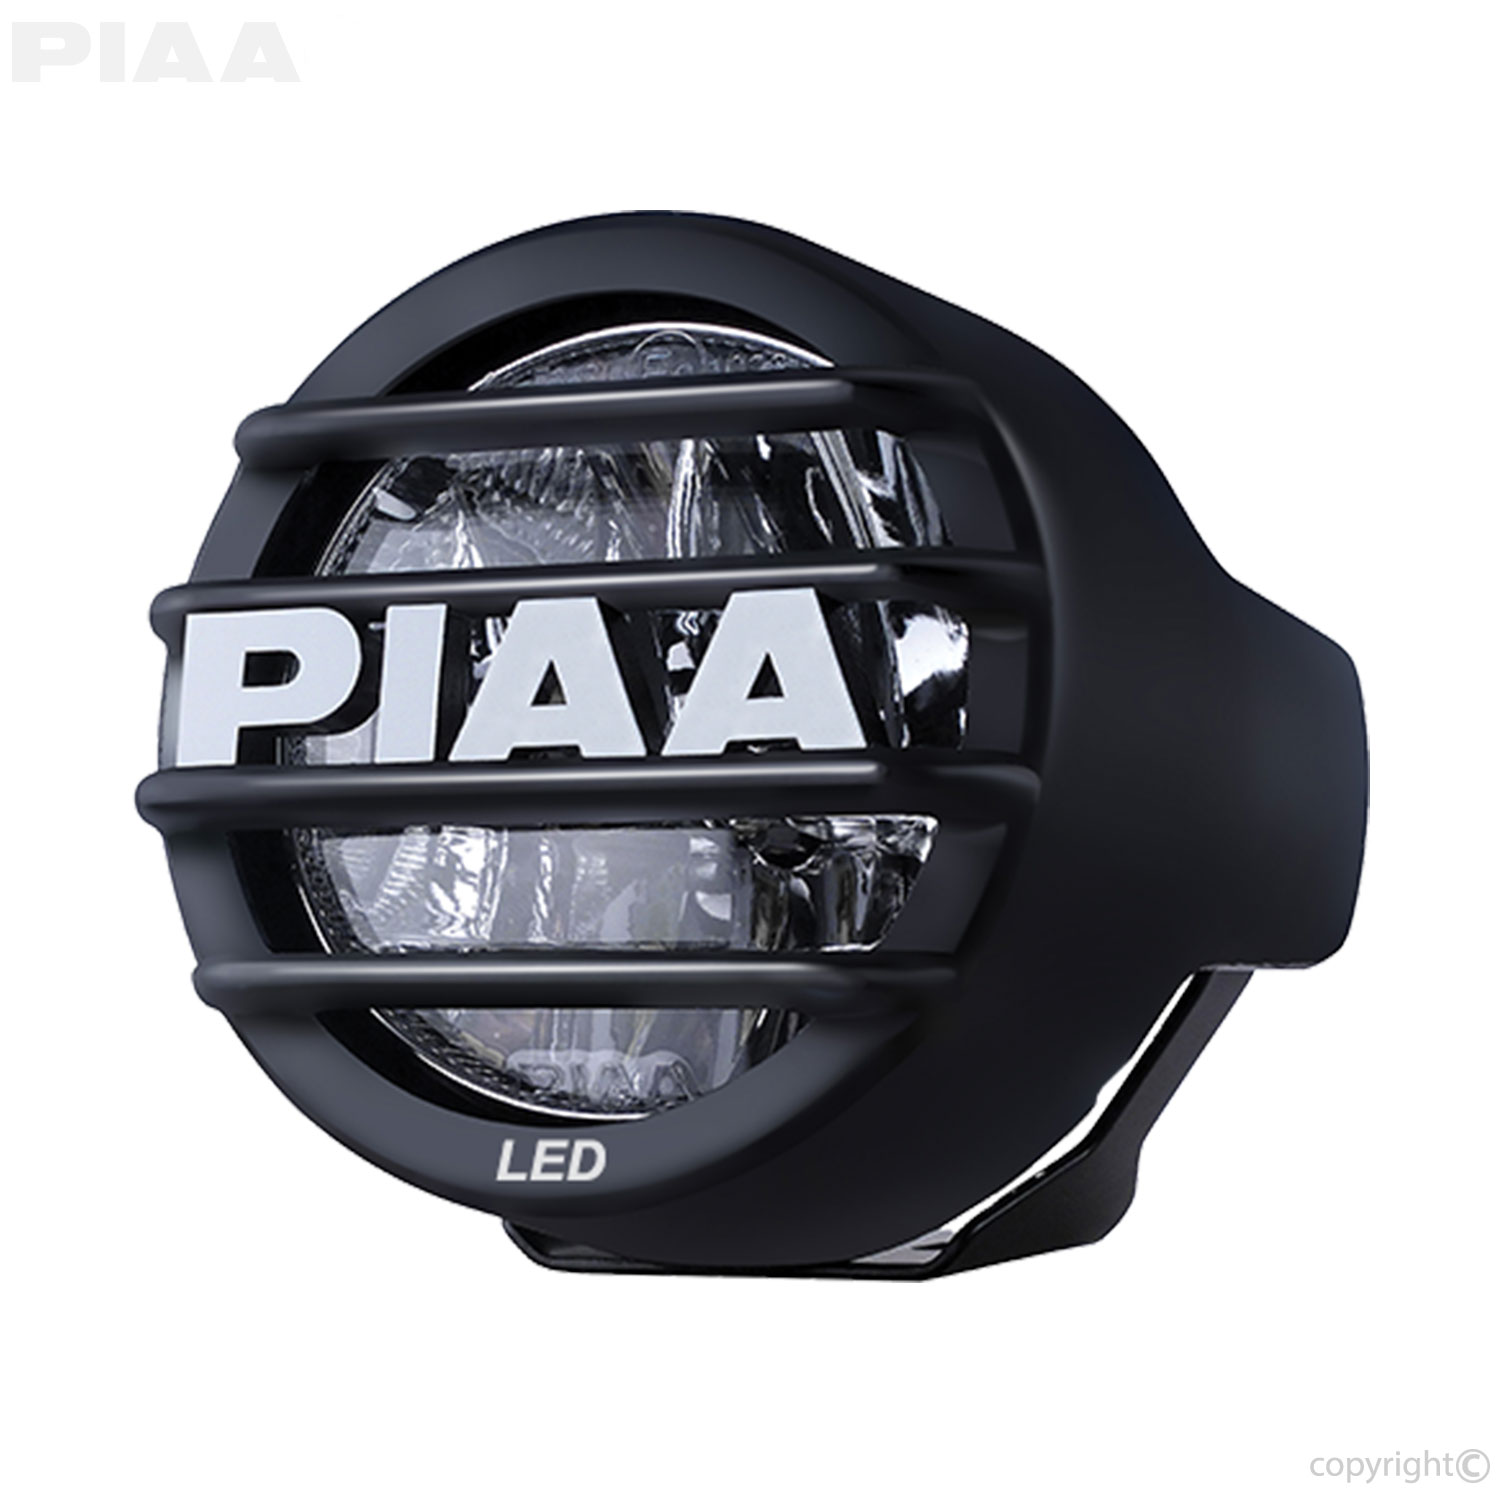 hight resolution of  piaa wiring diagram on piaa 1100x wiring diagram 30 amp relay diagram